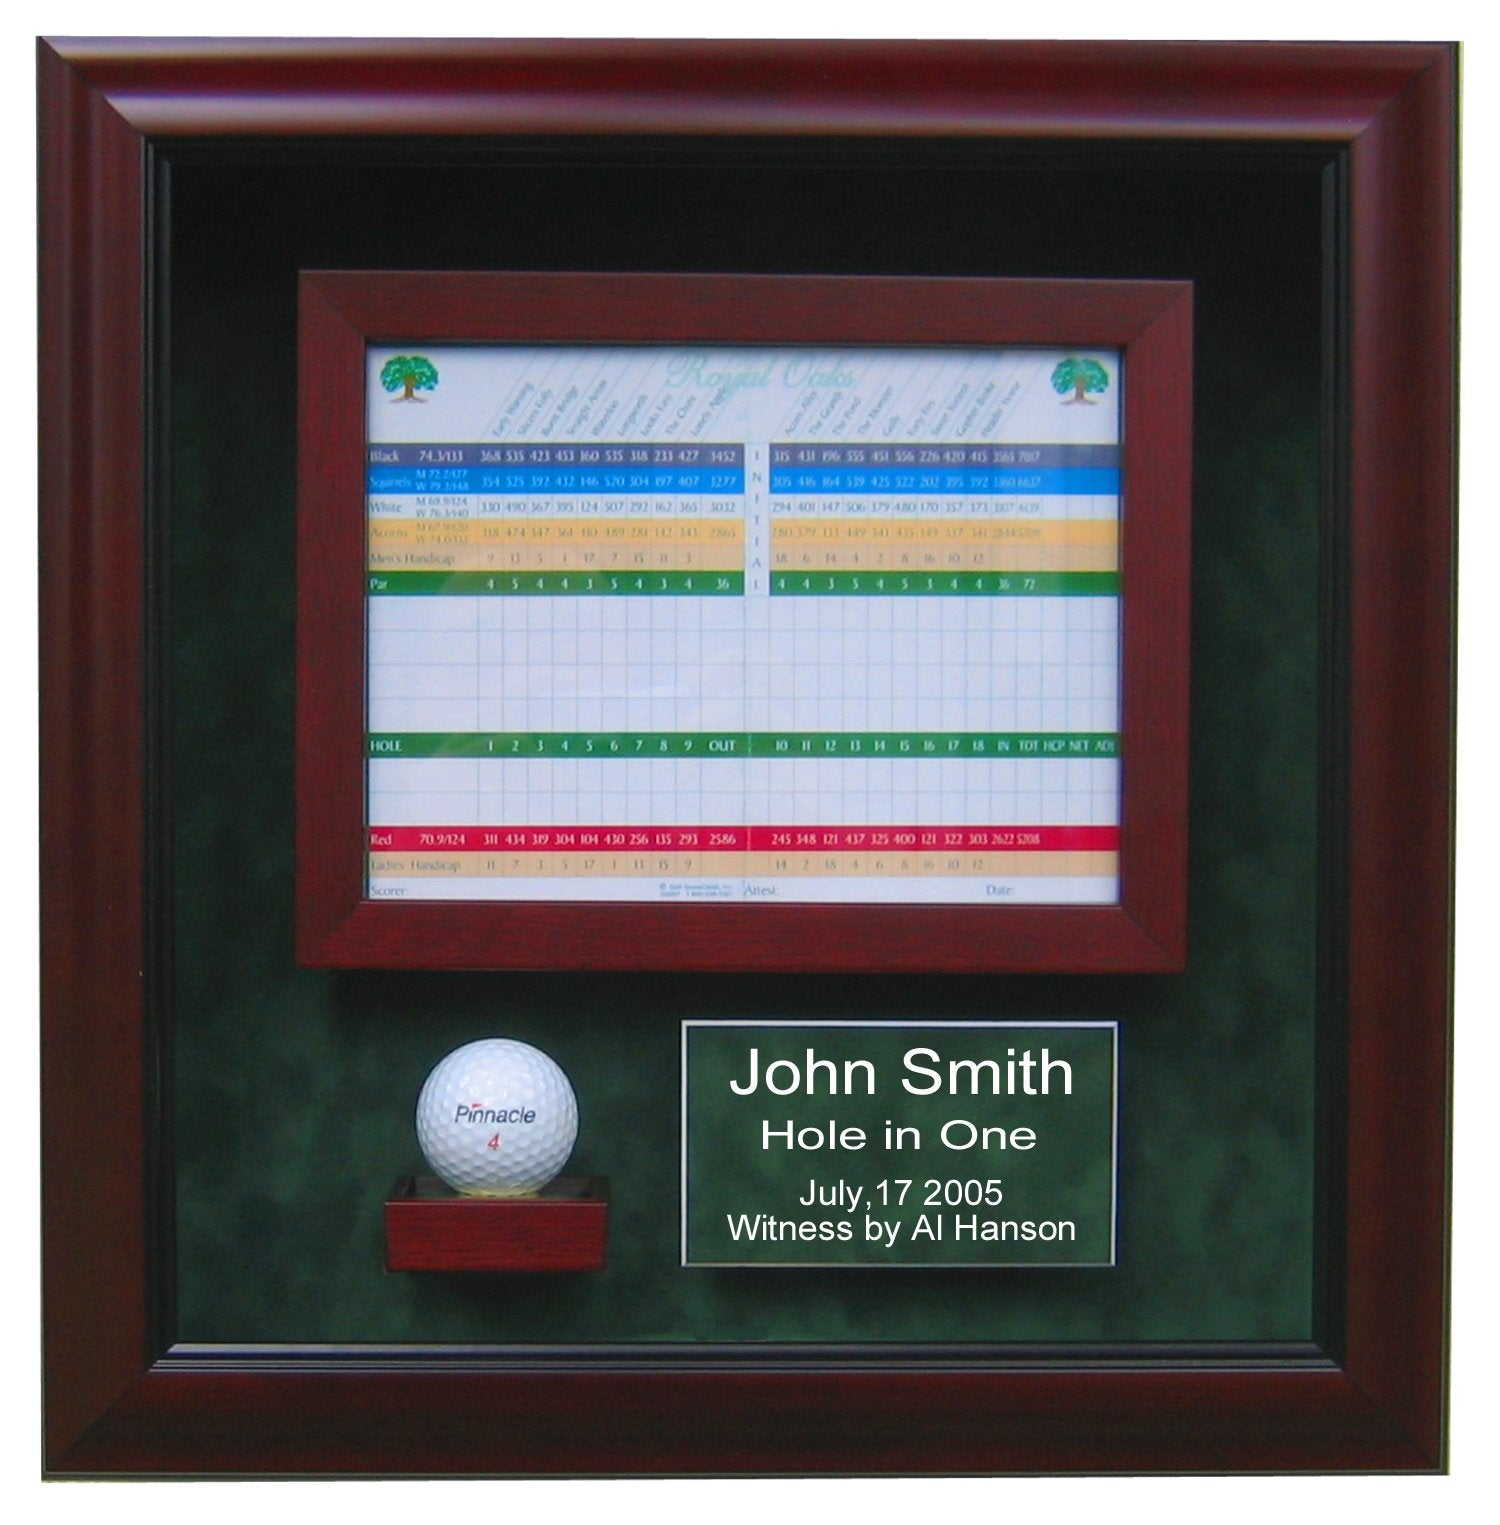 HOLE IN ONE DISPLAY CASE-Powers Sports Memorabilia